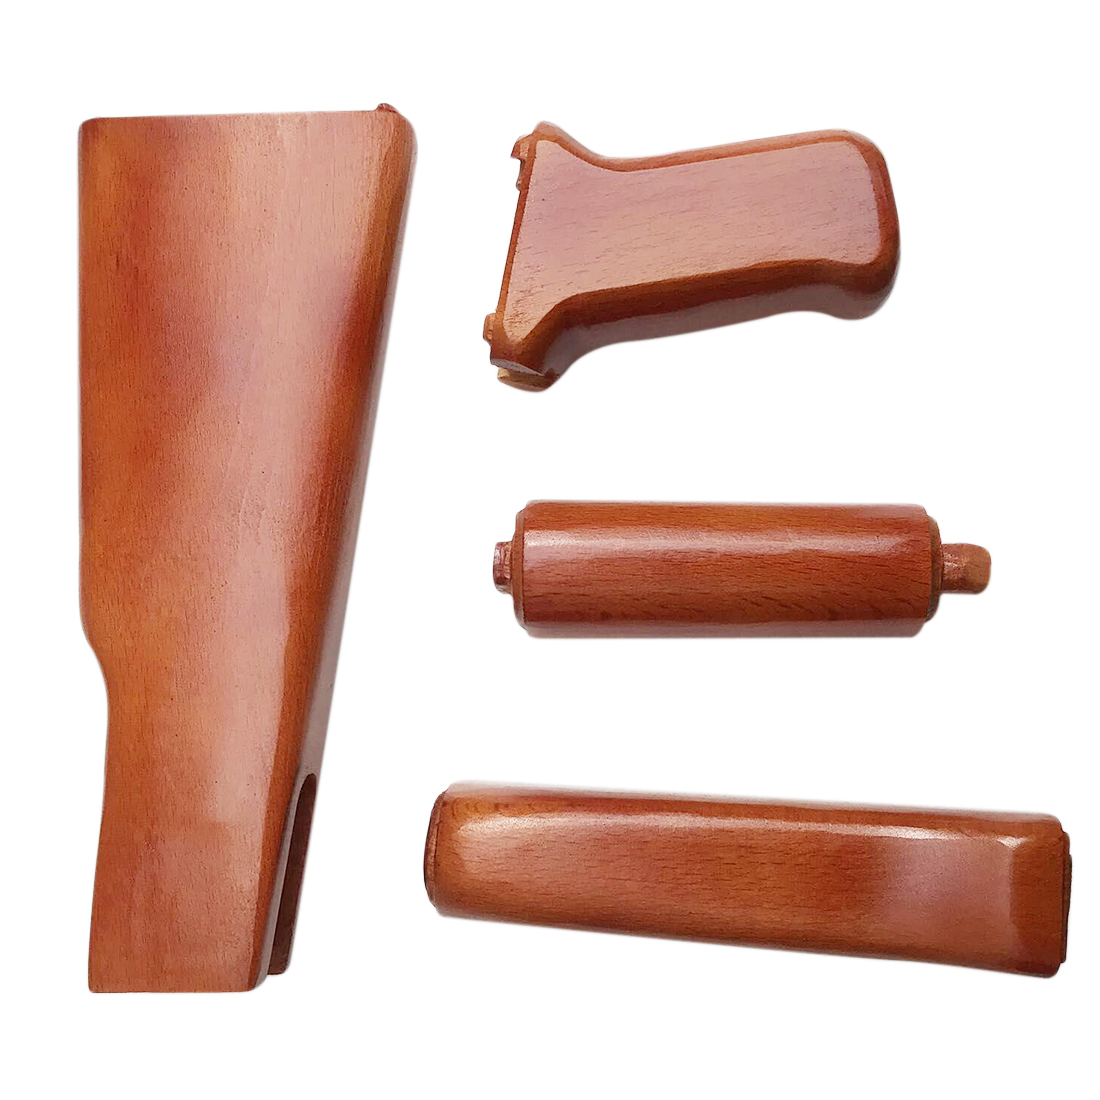 US $90 65 40% OFF|Rrowsfire 1 Pcs Solid Wood Stock Handguard And Rear  Handle For RX AK47 Water Gel Beads Blaster Red Yellow-in Toy Guns from Toys  &